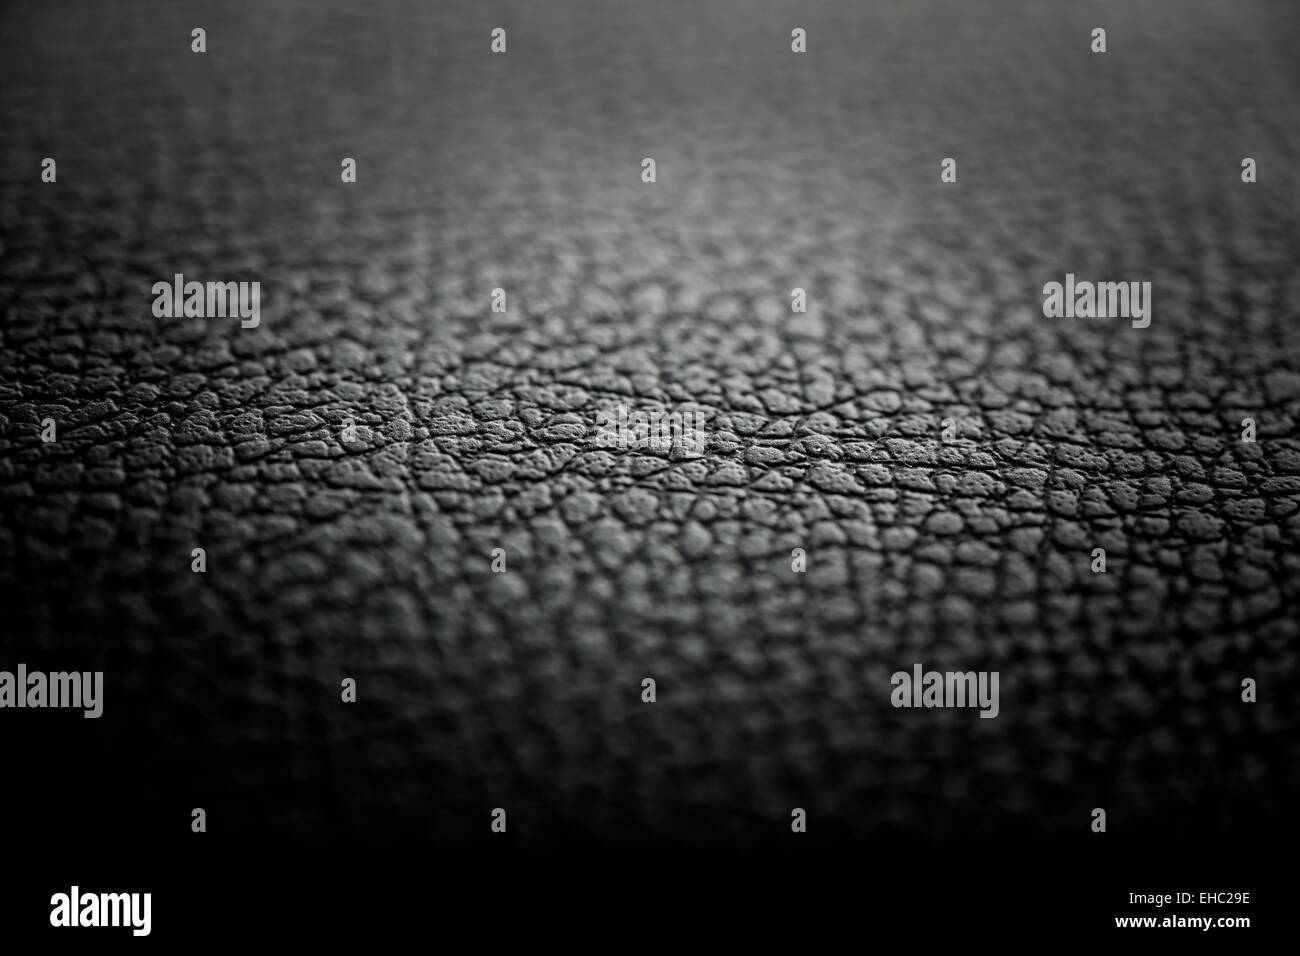 Black leather texture detail with shallow depth of field - Stock Image